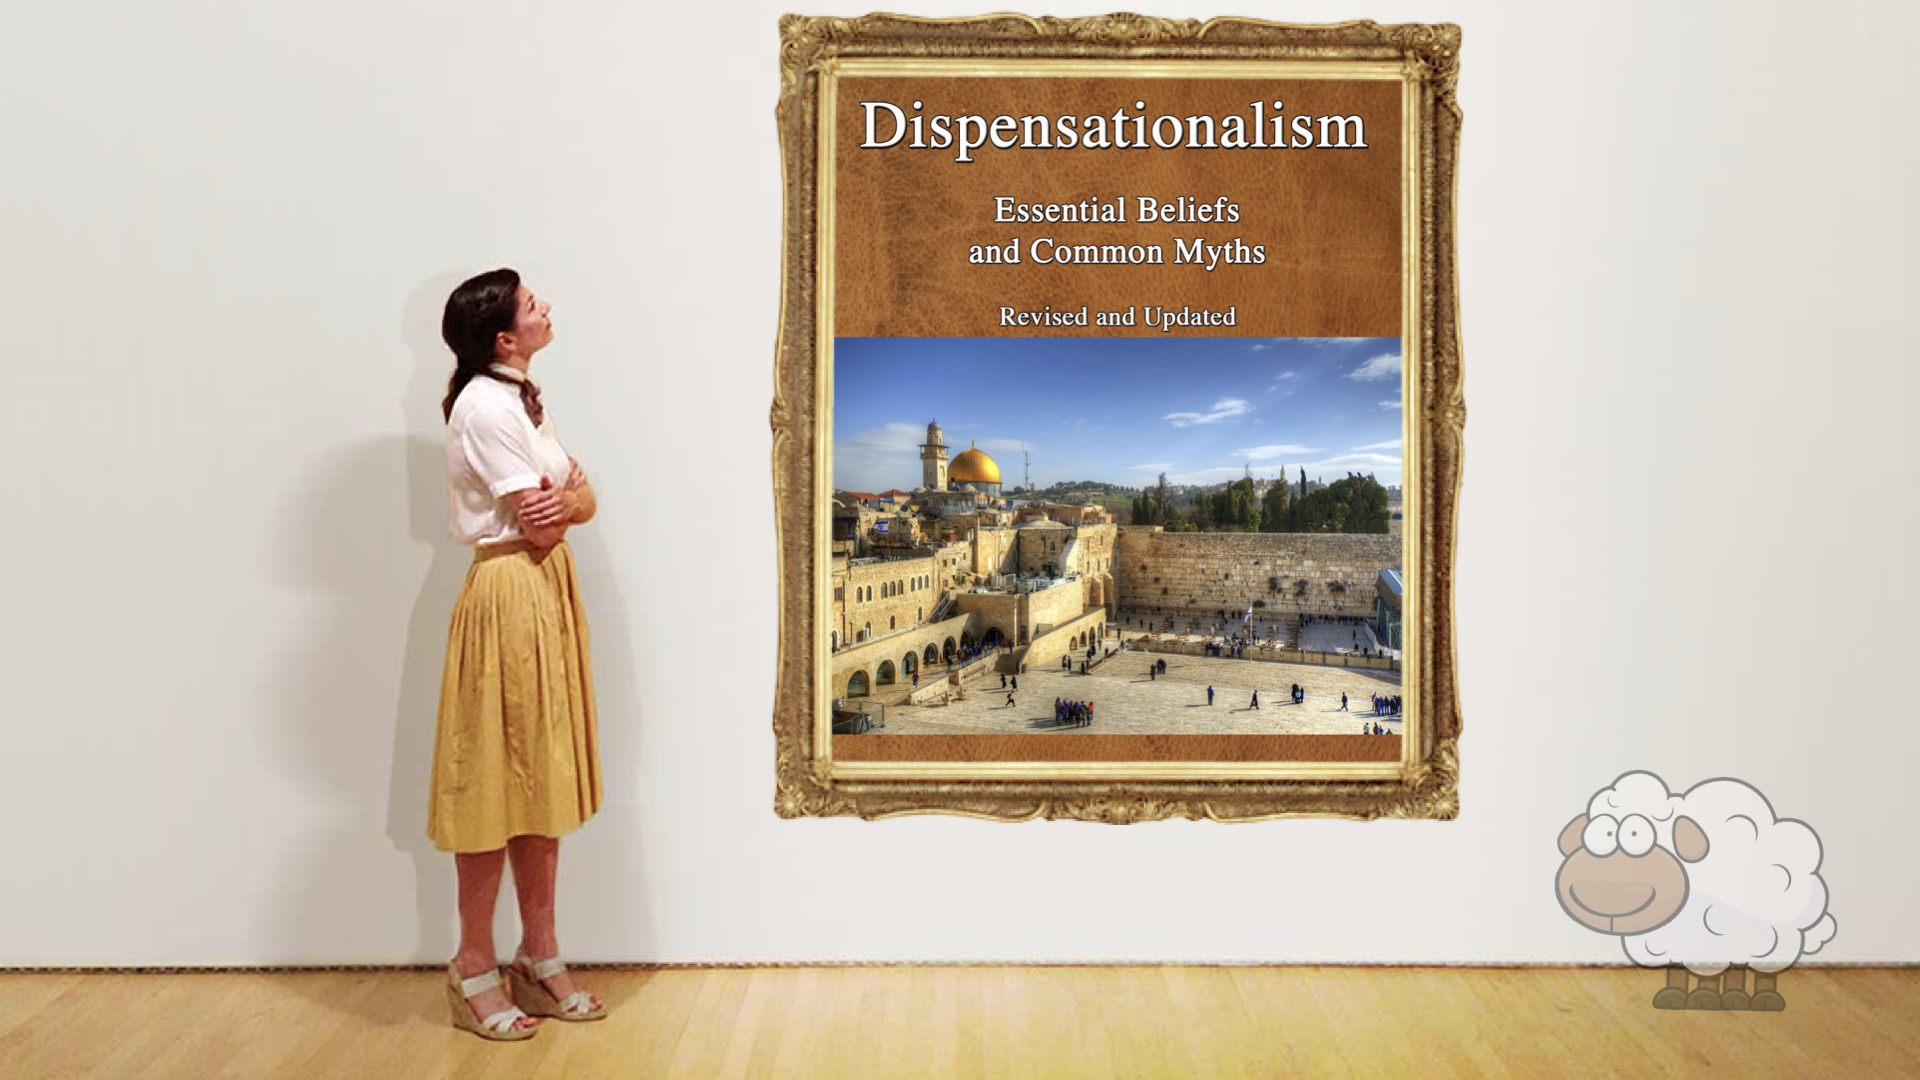 Michael J. Vlachl.   Dispensationalism: Essential Beliefs and Common Myths   .  Los Angeles, CA: Theological Studies Press, 2017, 112 pp. $13.02.